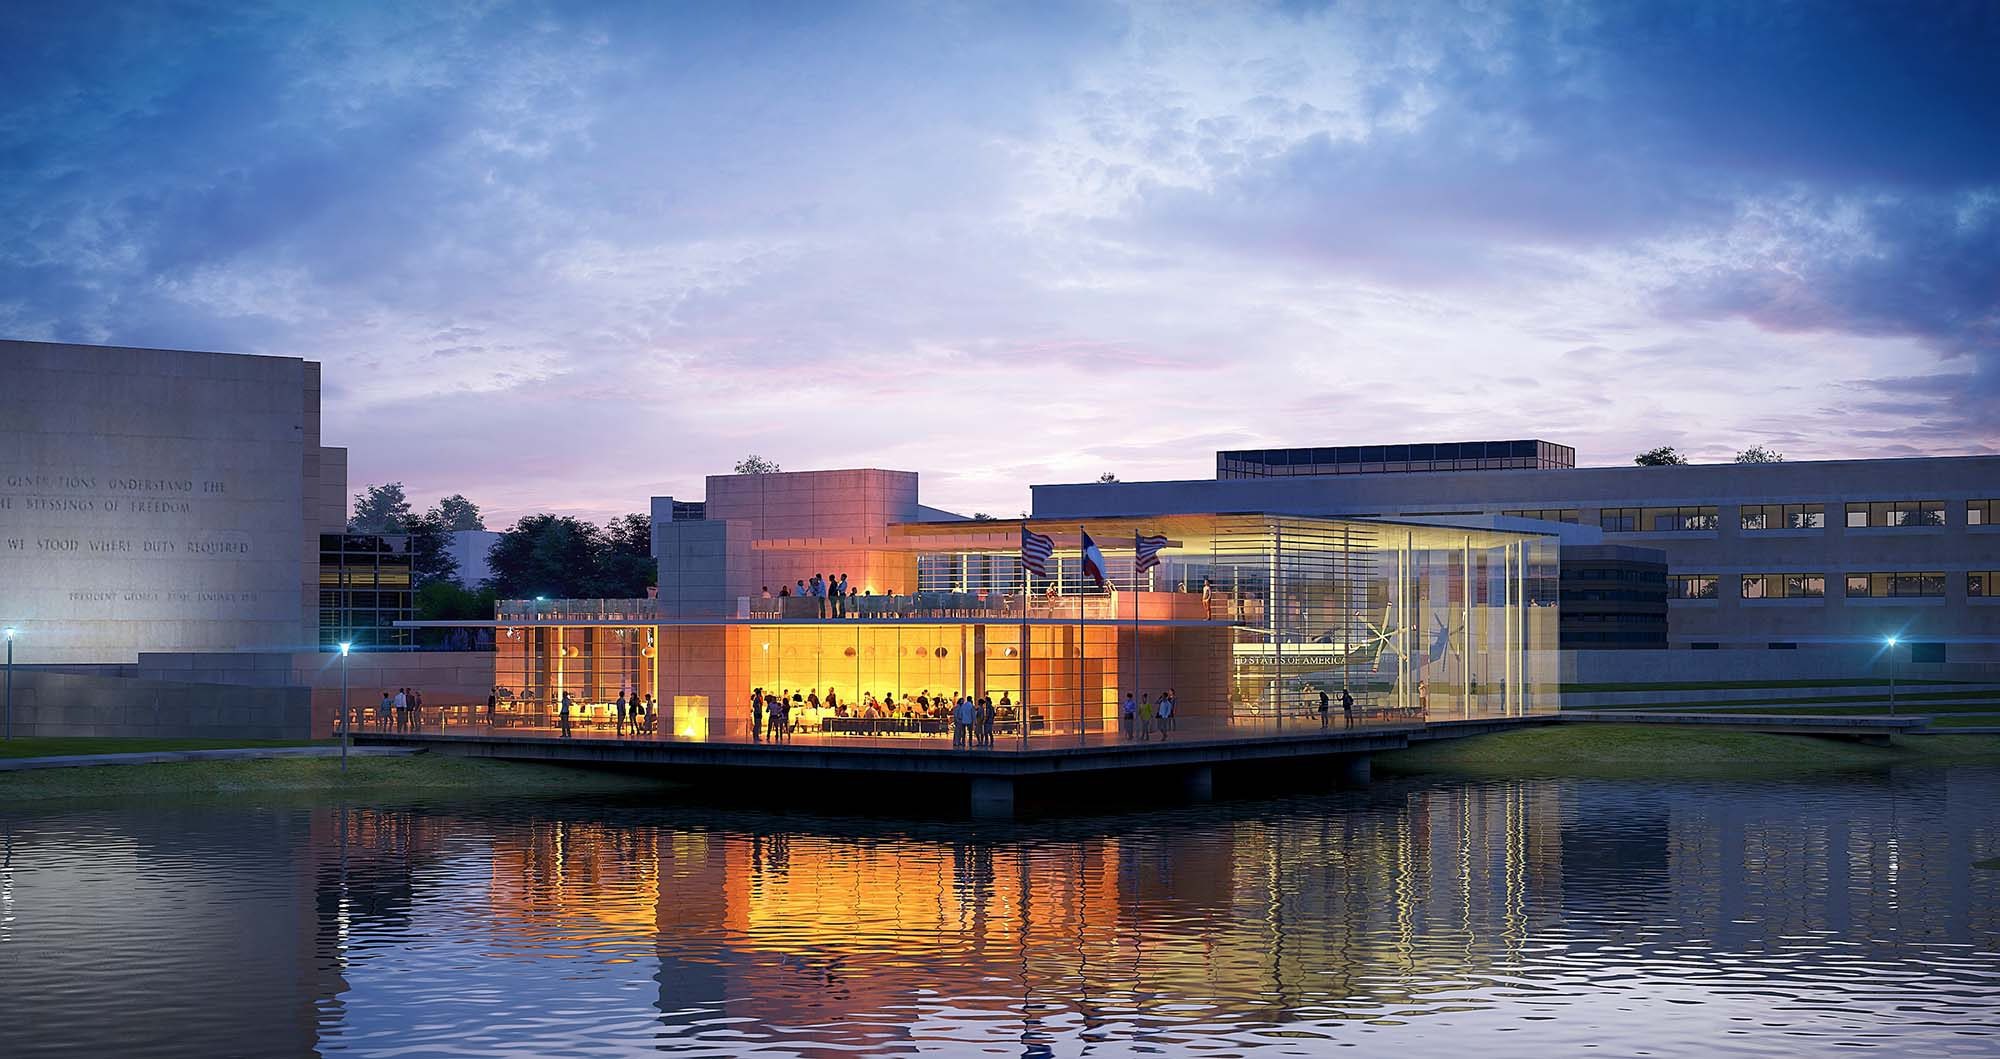 McKissack brings an informative and interactive museum design to the George H.W. Bush Presidential Library and Museum in Texas.